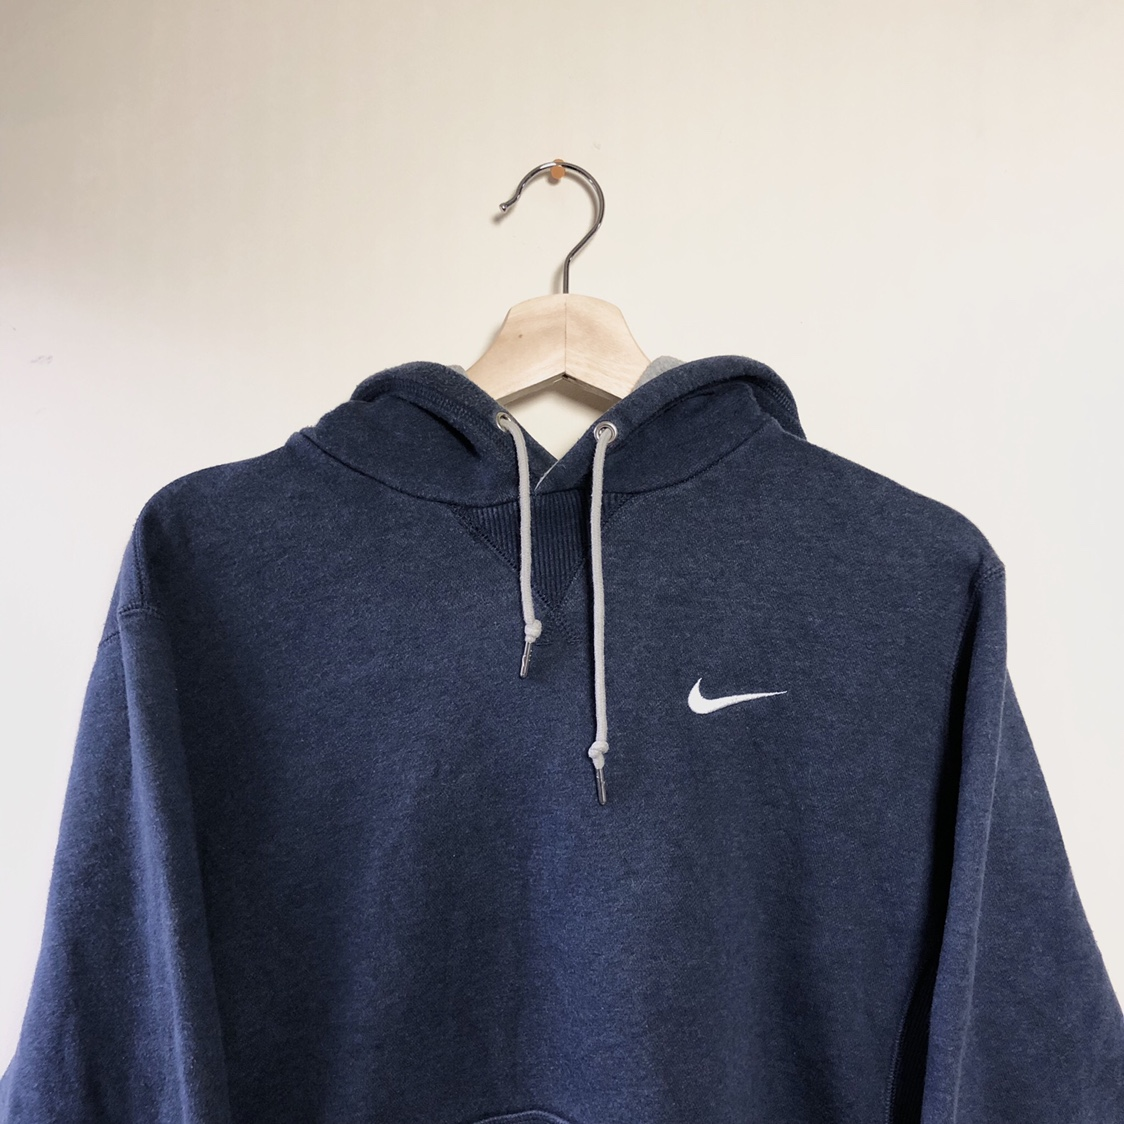 Navy blue nike hoodie with white